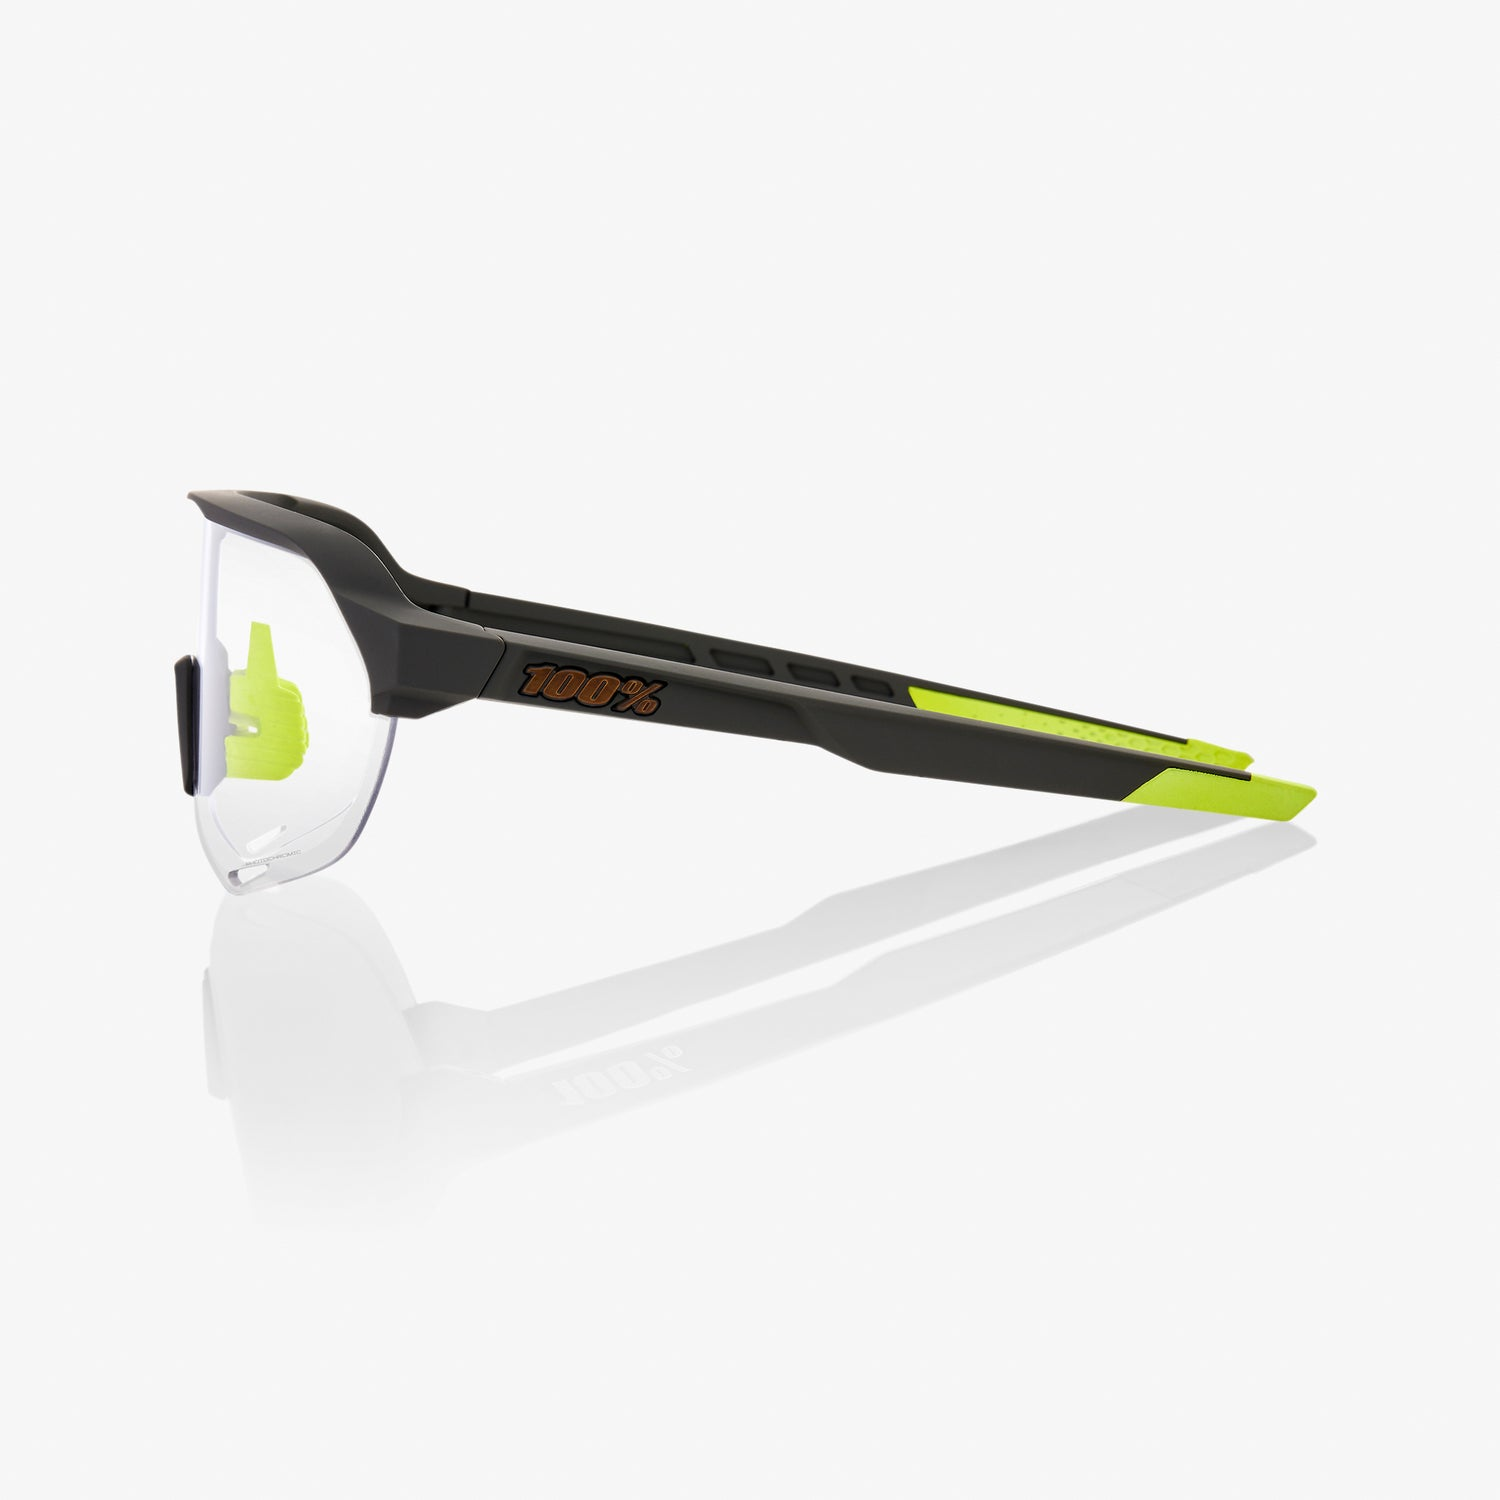 S2 - Soft Tact Cool Grey - Photochromic Lens